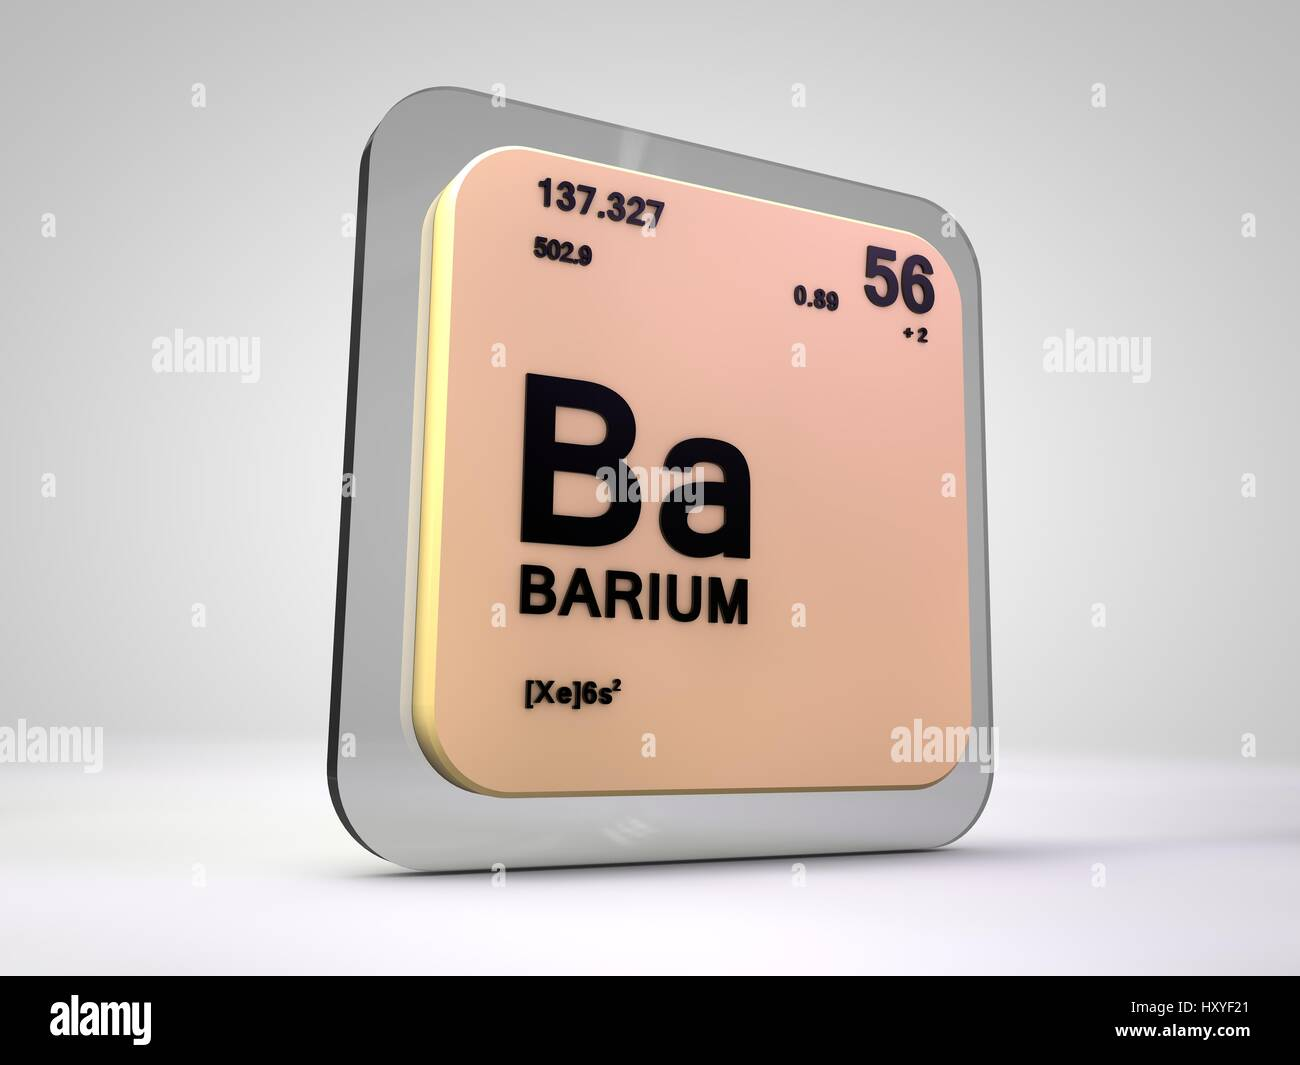 Barium ba chemical element periodic table 3d render stock barium ba chemical element periodic table 3d render gamestrikefo Image collections